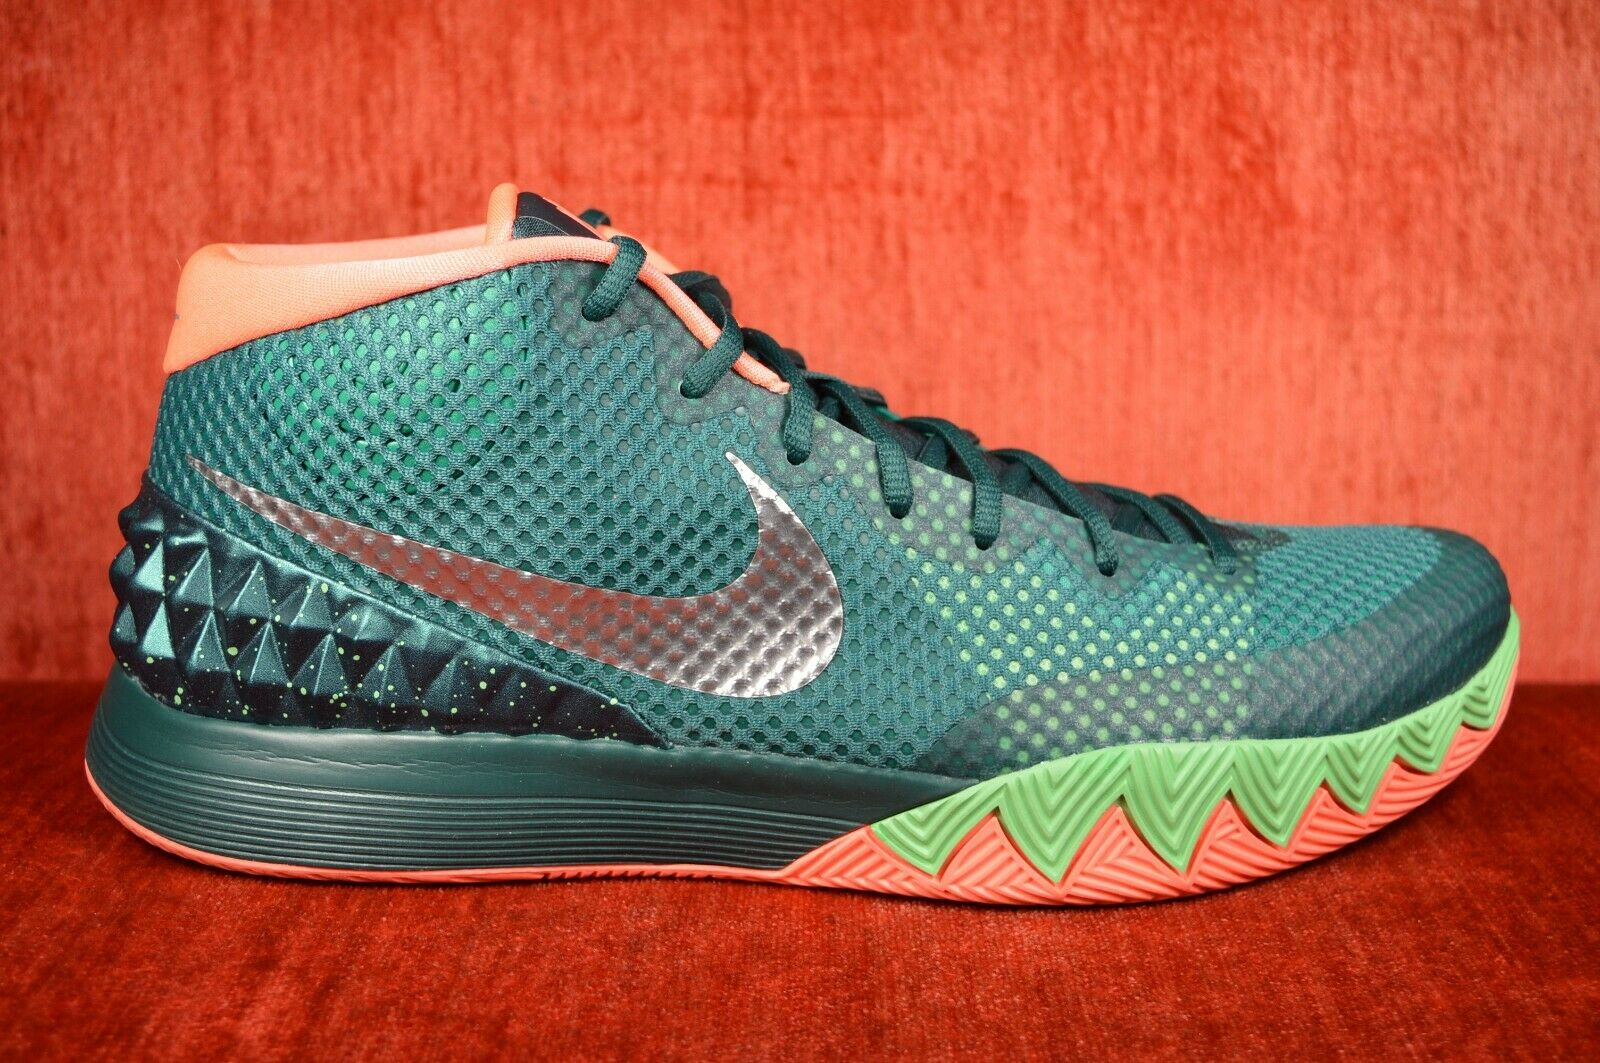 WORN ONCE NIKE KYRIE IRVING 1 FLYTRAP DARK EMERALD 705277 313 SIZE 13